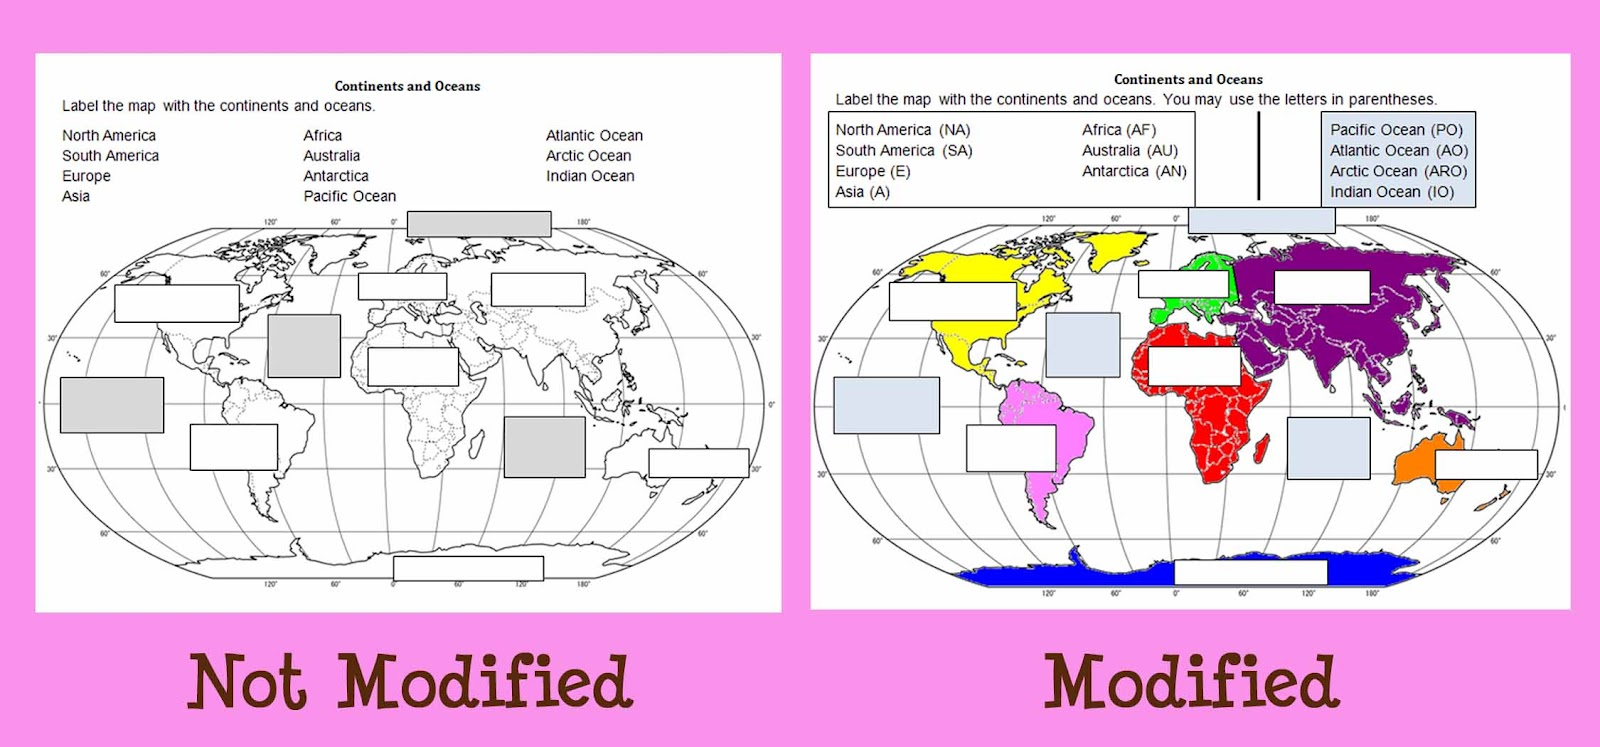 Worksheets Label The Continents And Oceans Worksheet worksheets continents and oceans quiz worksheet 4th grade for sure modify accommodate okay if students